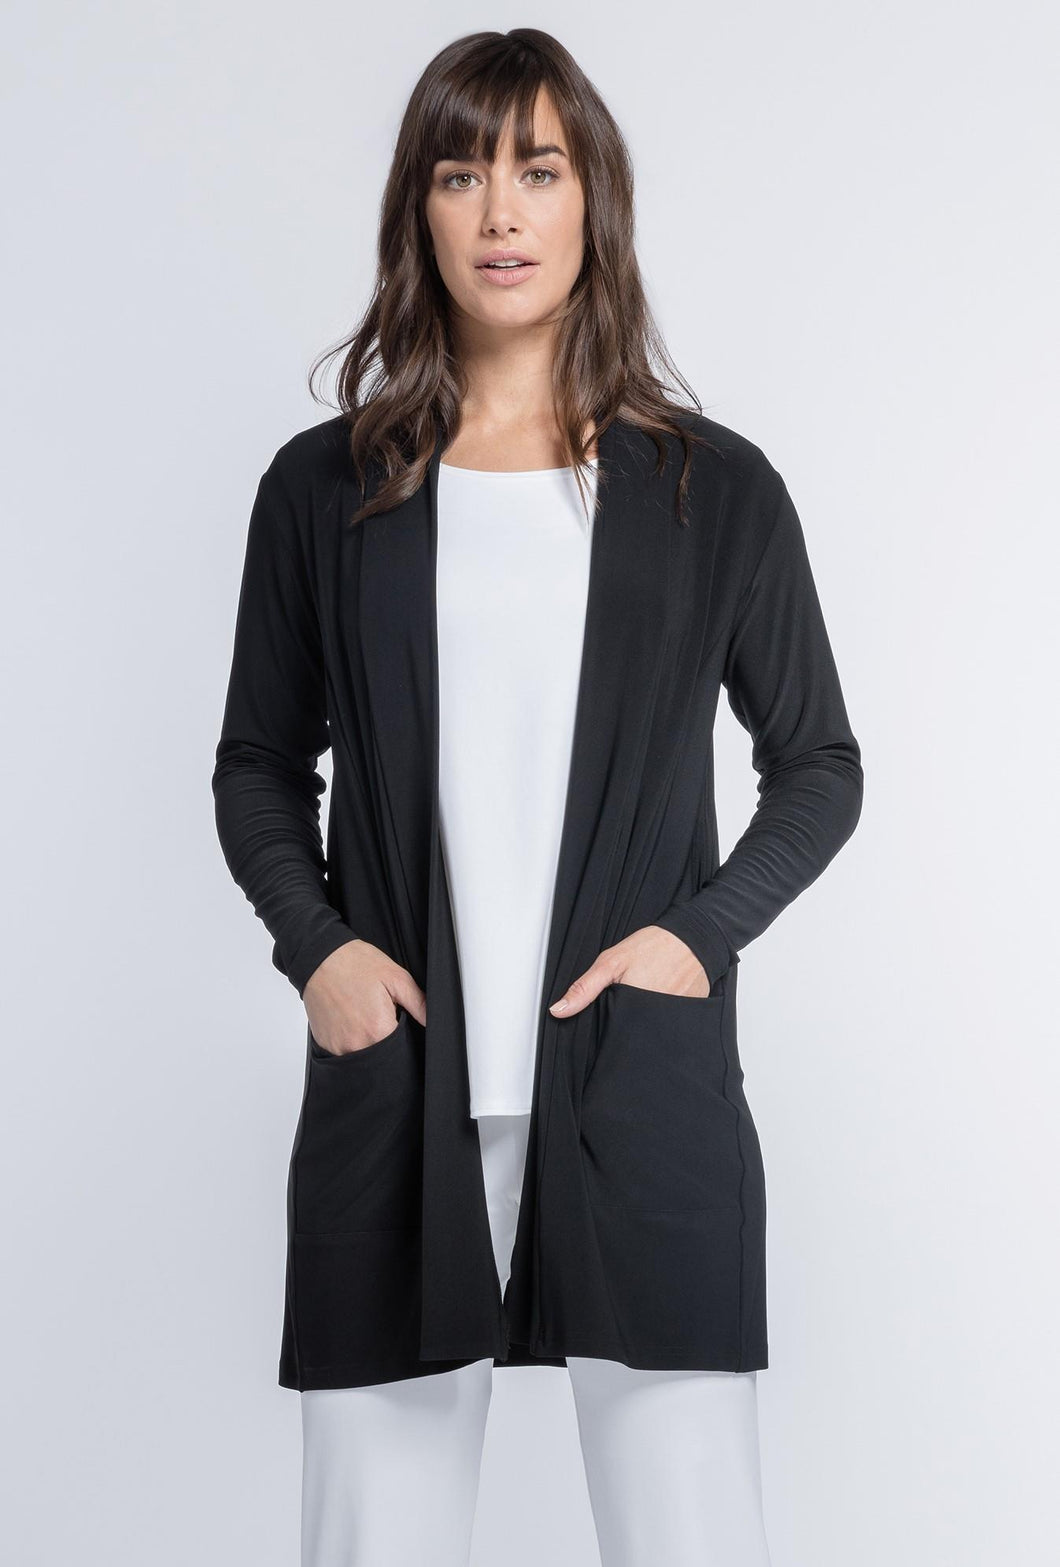 Sympli Go To Cardi Long #25111 at www.threewildwomen.ca | Free shipping over $200 North America